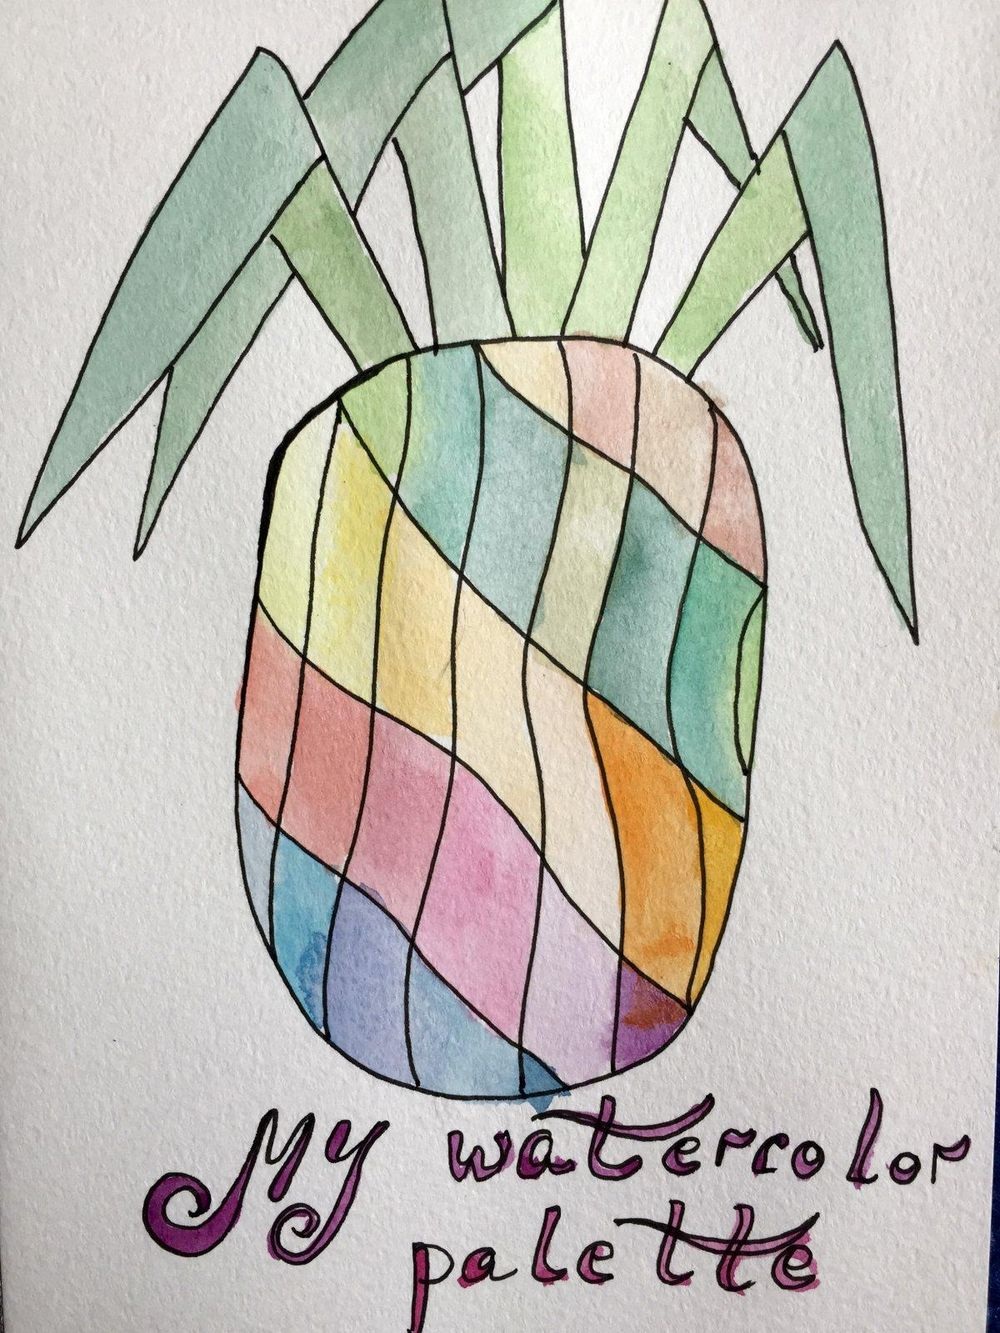 My pineapple palette - image 1 - student project